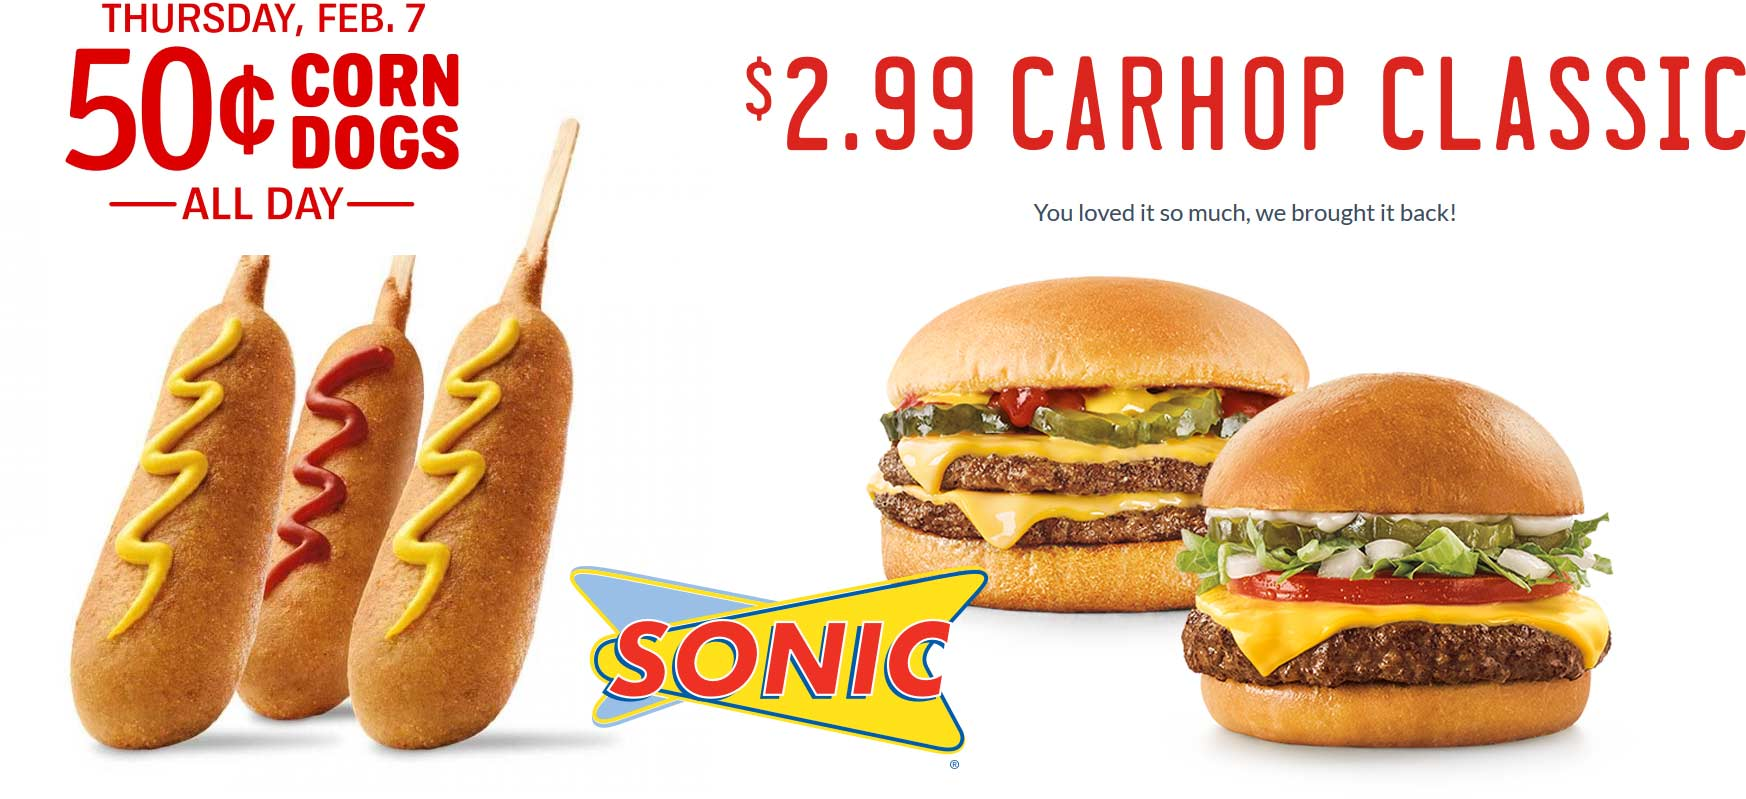 Sonic Drive-In Coupon February 2020 .50 cent corn dogs today at Sonic Drive-In restaurants